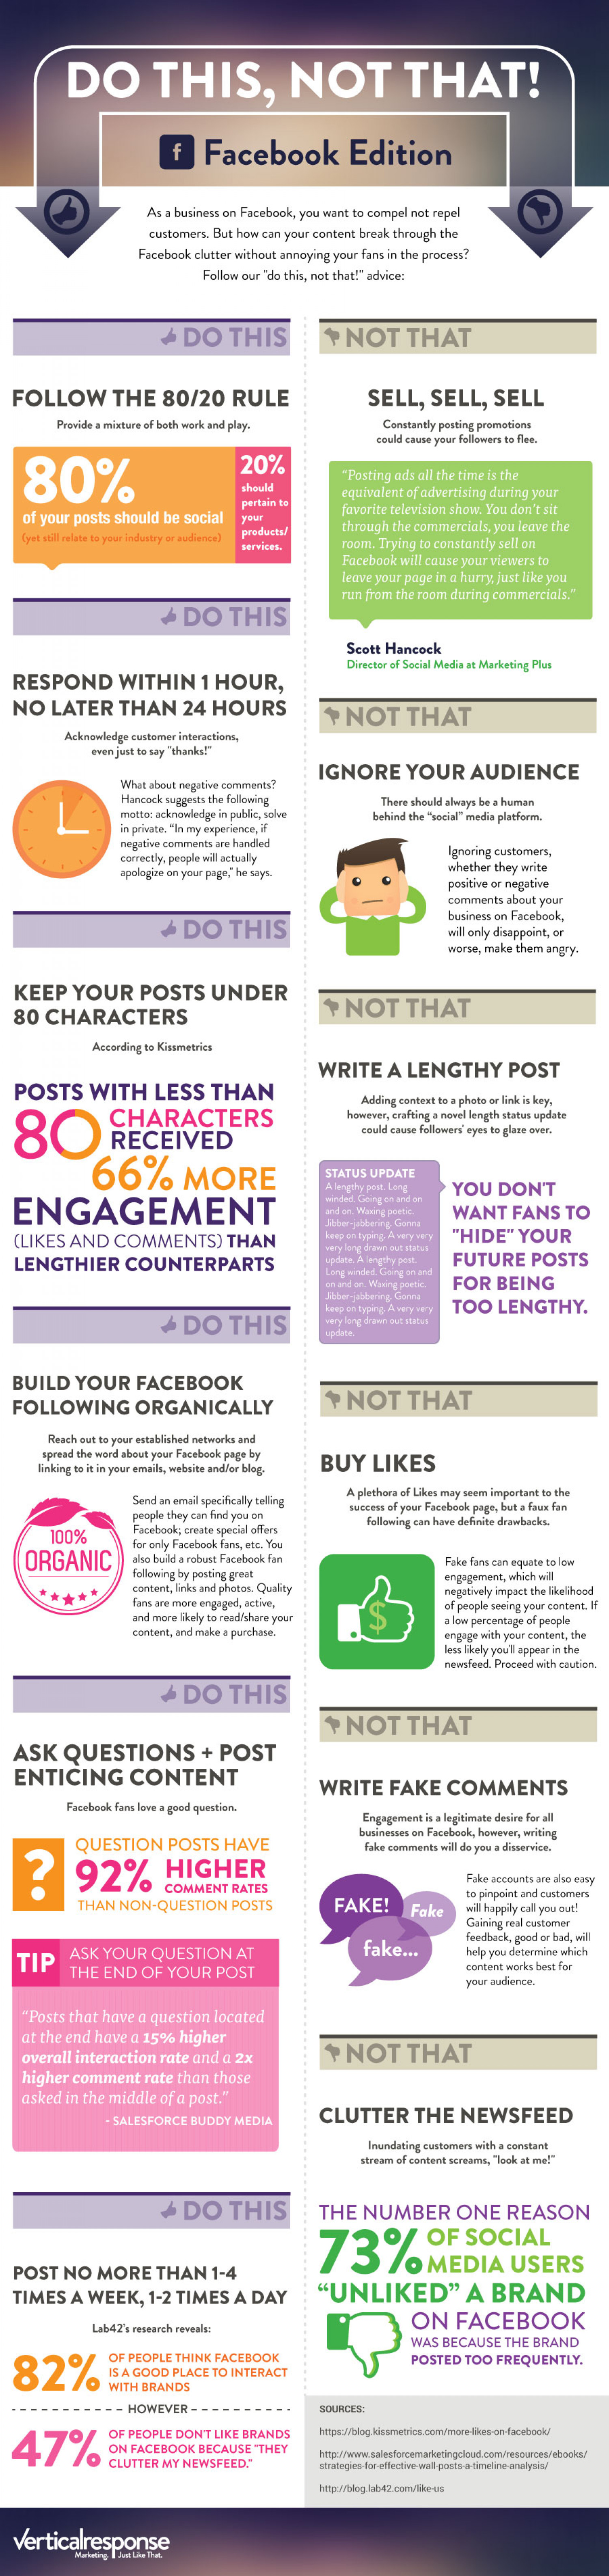 Do This, Not That! Facebook Edition | Visual.ly